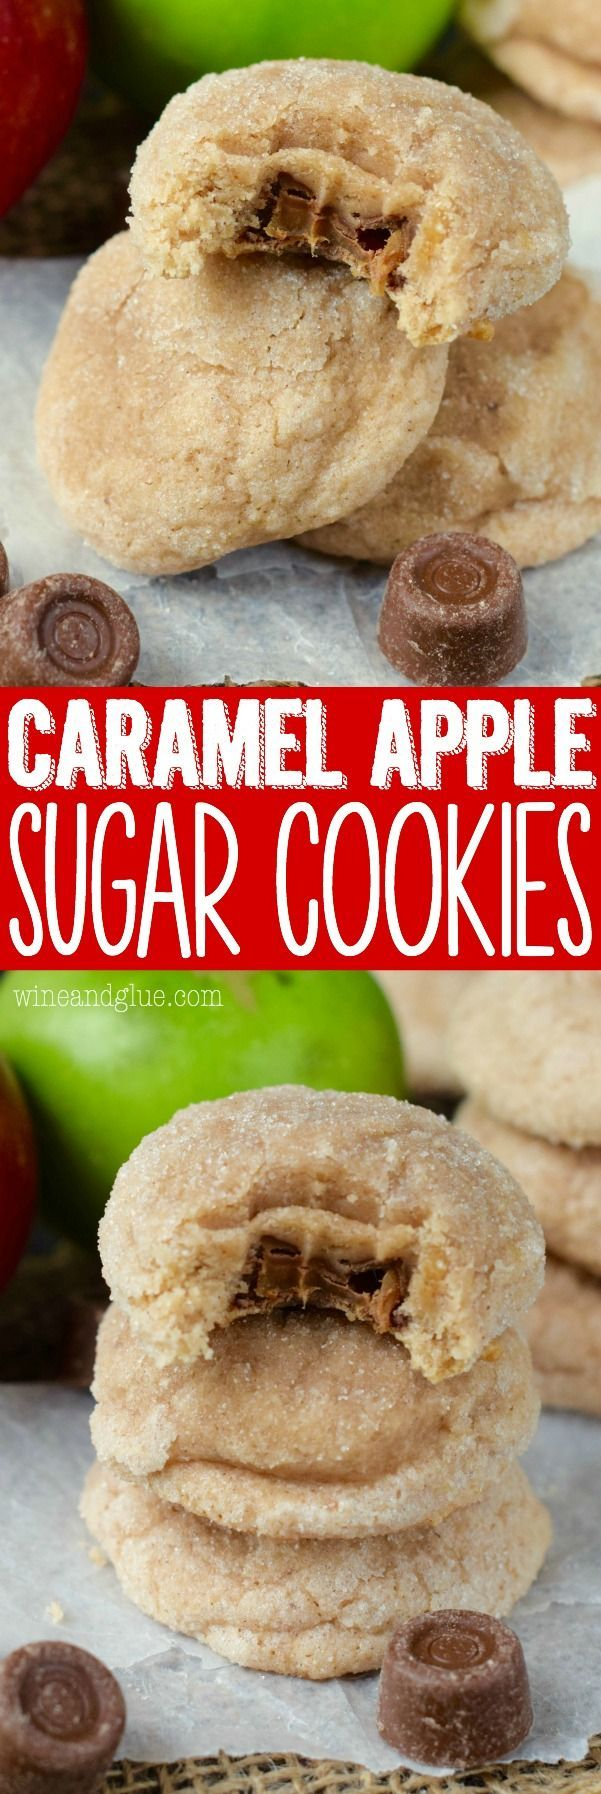 apple right Cookies Apple Caramel are inside  flavored and caramel Amazingly have soft Sugar with butter trail road running that trainers baked for